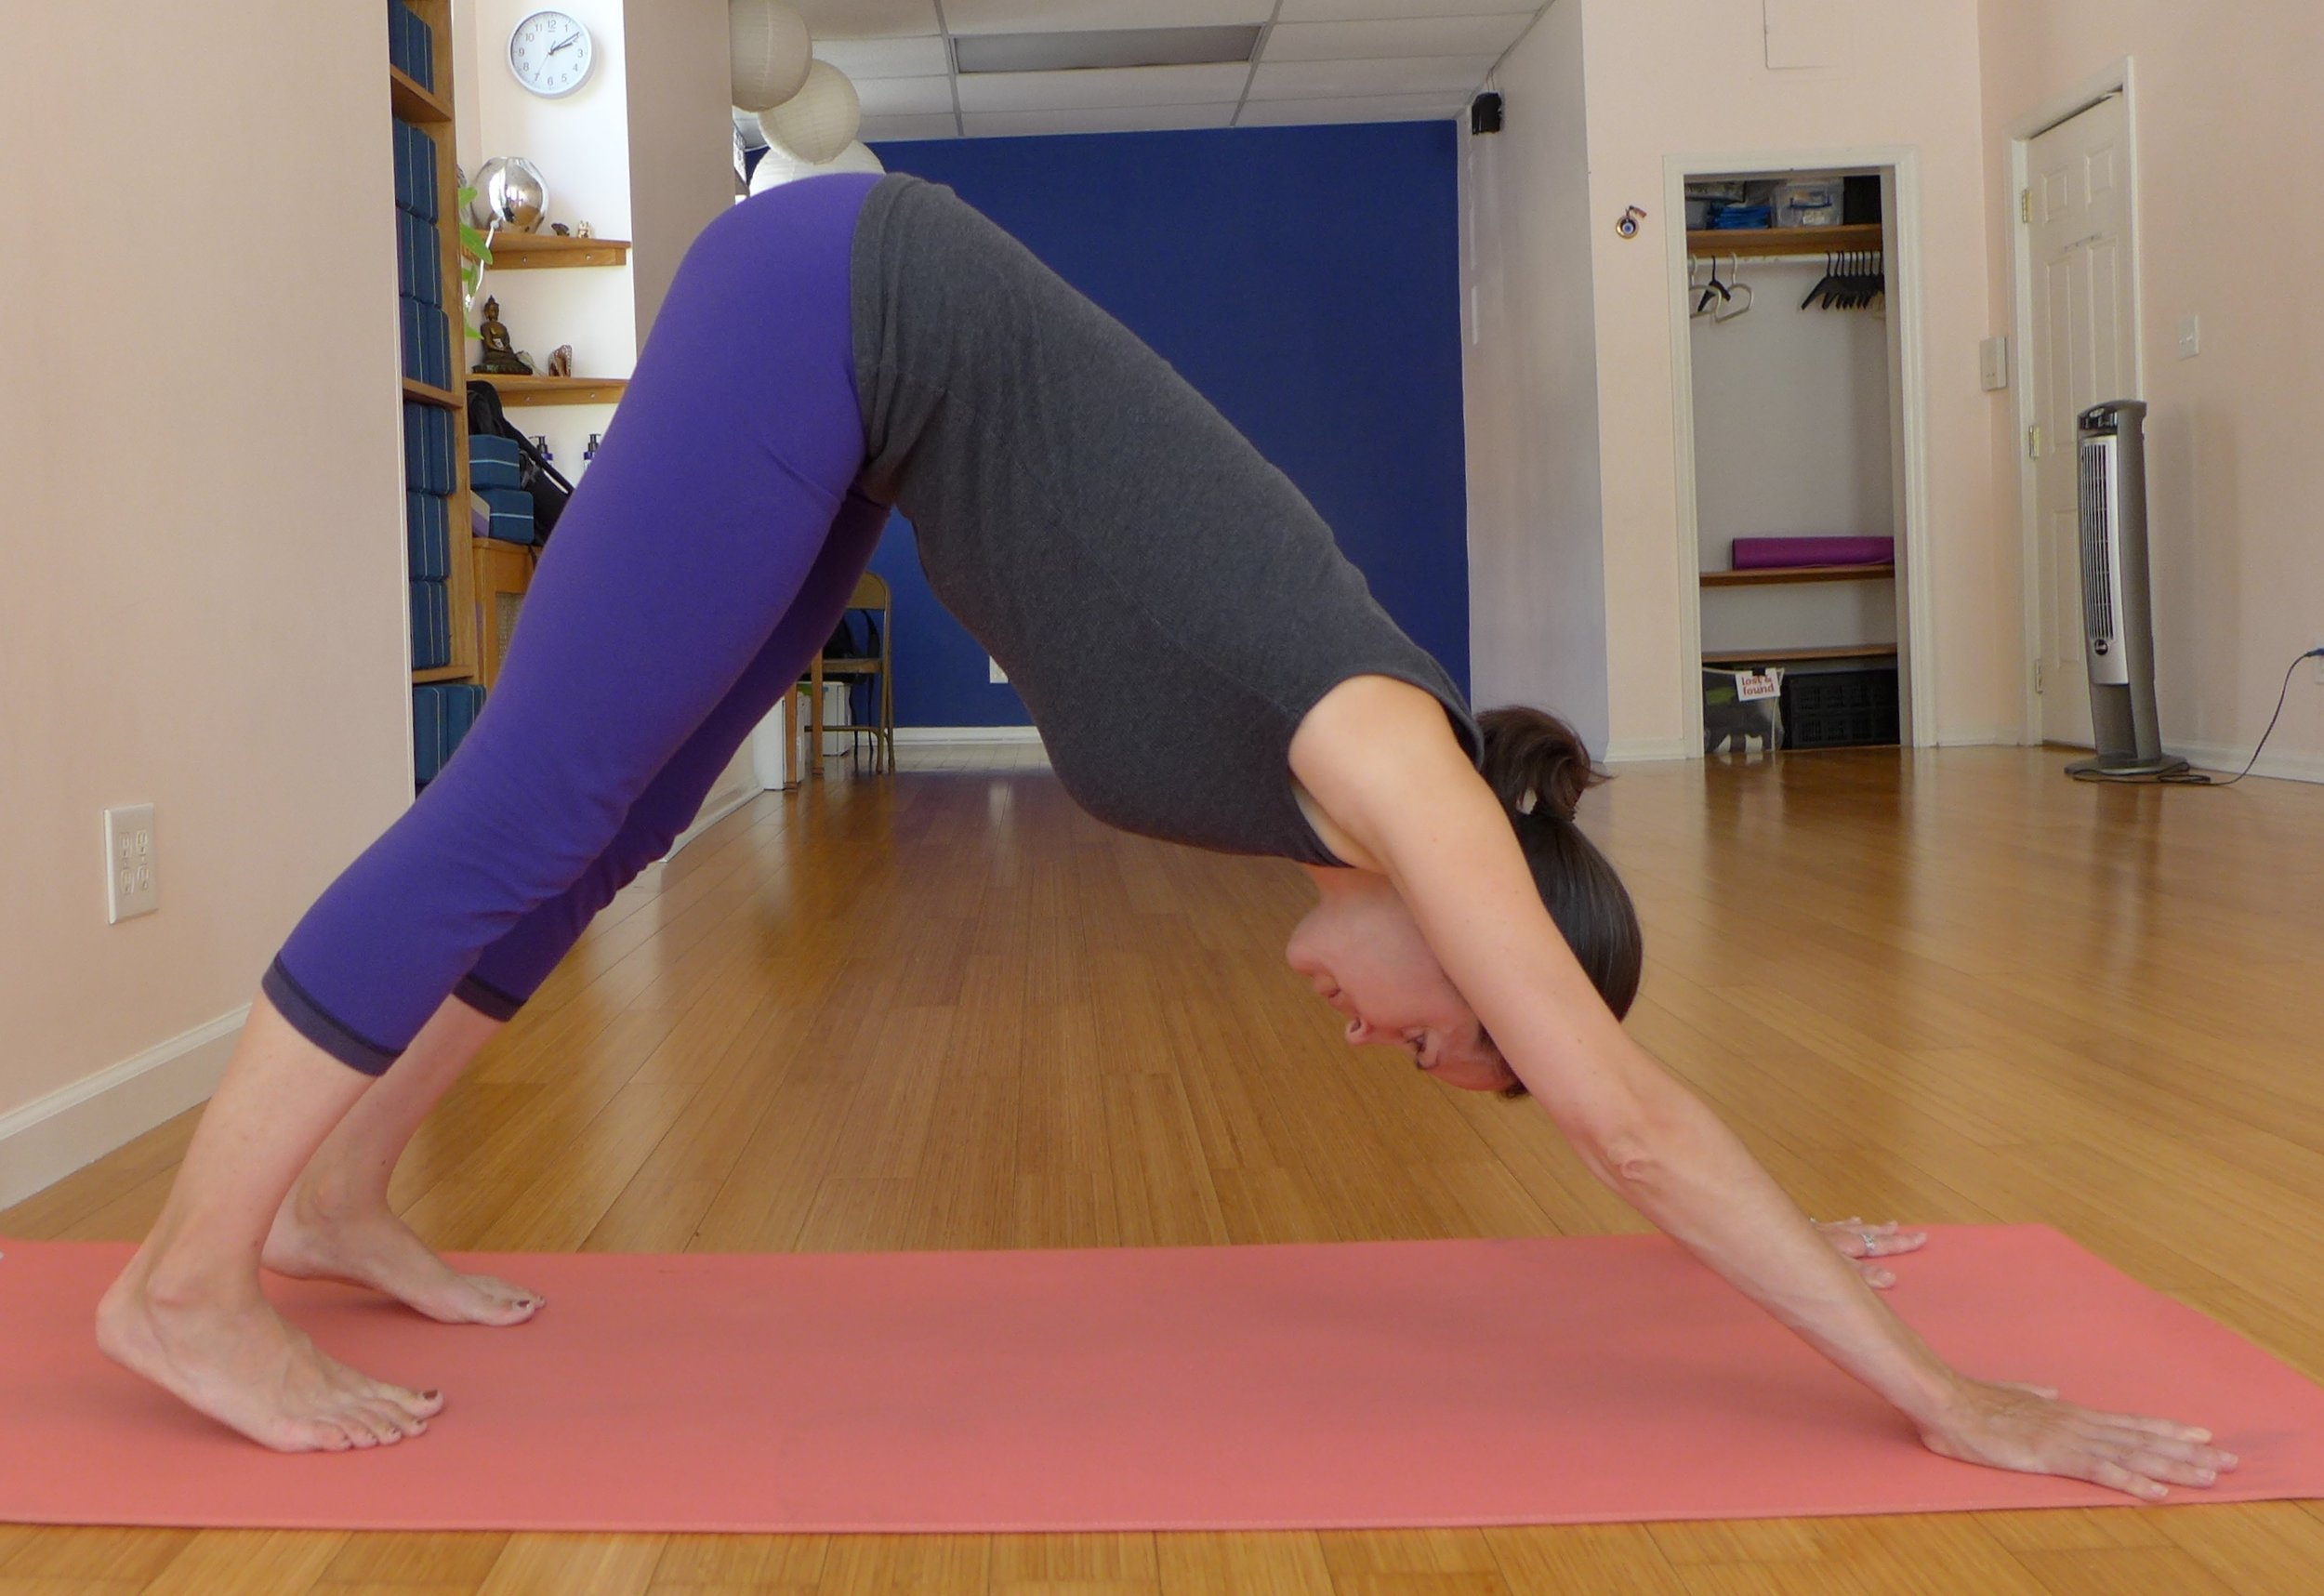 Downward Facing Dog: Great back body stretch as well as enhancing thoracic mobility.